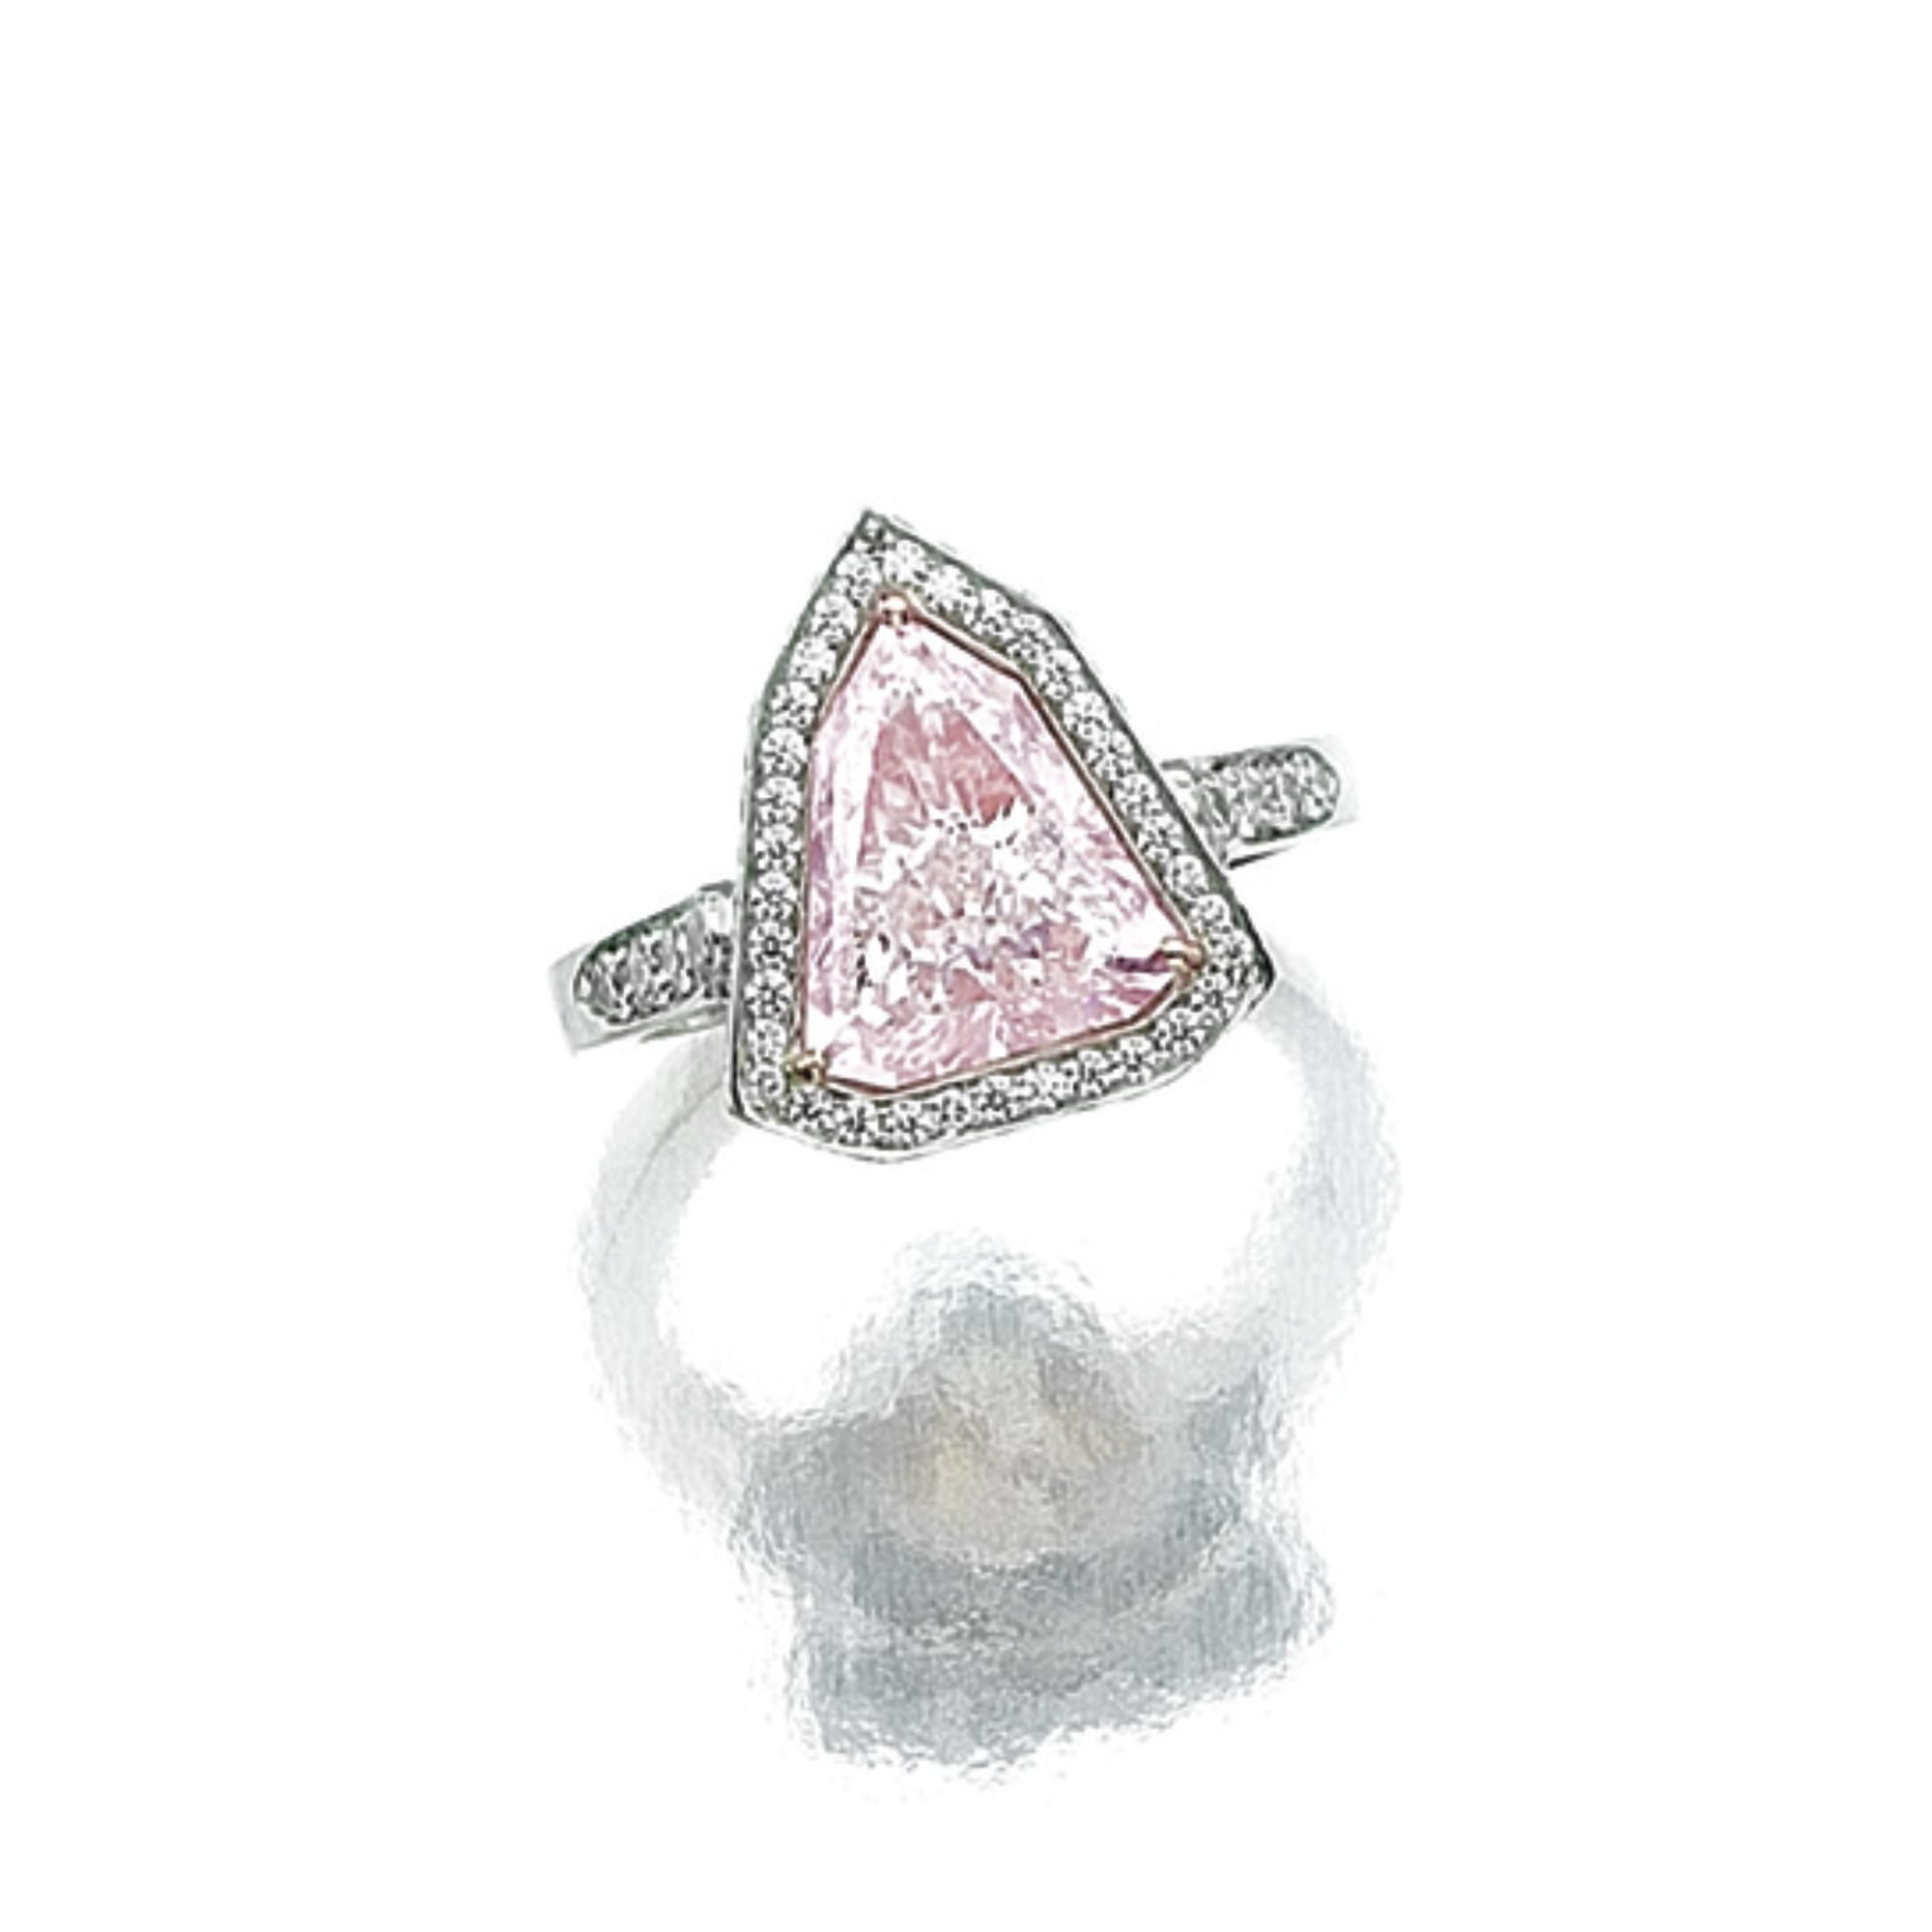 s shield fantasy with set over white shaped cut ring and rub in sapphire diamond centrally crowned gold a setting six pin